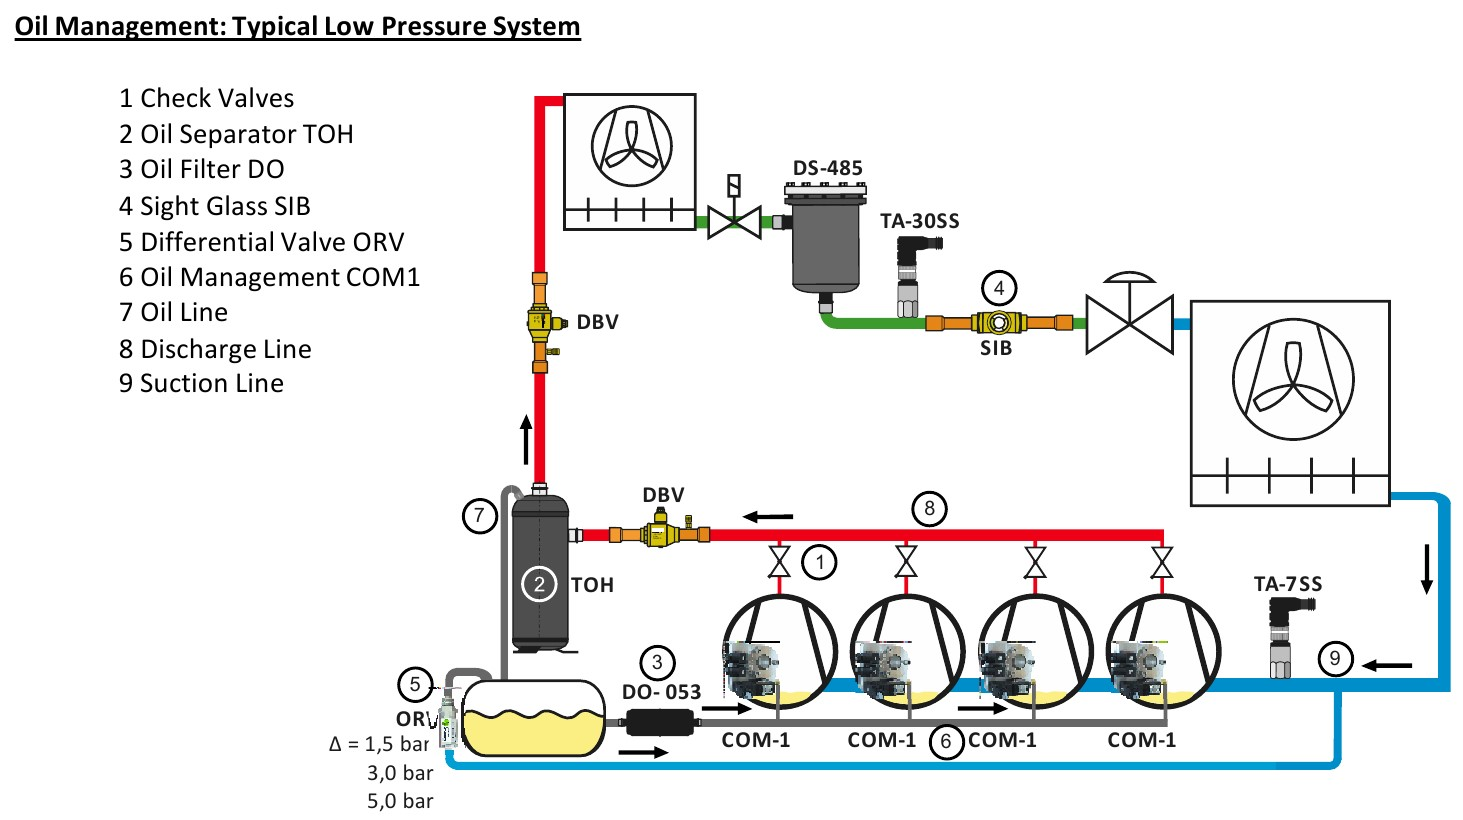 Oil Management Typical Low Pressure System